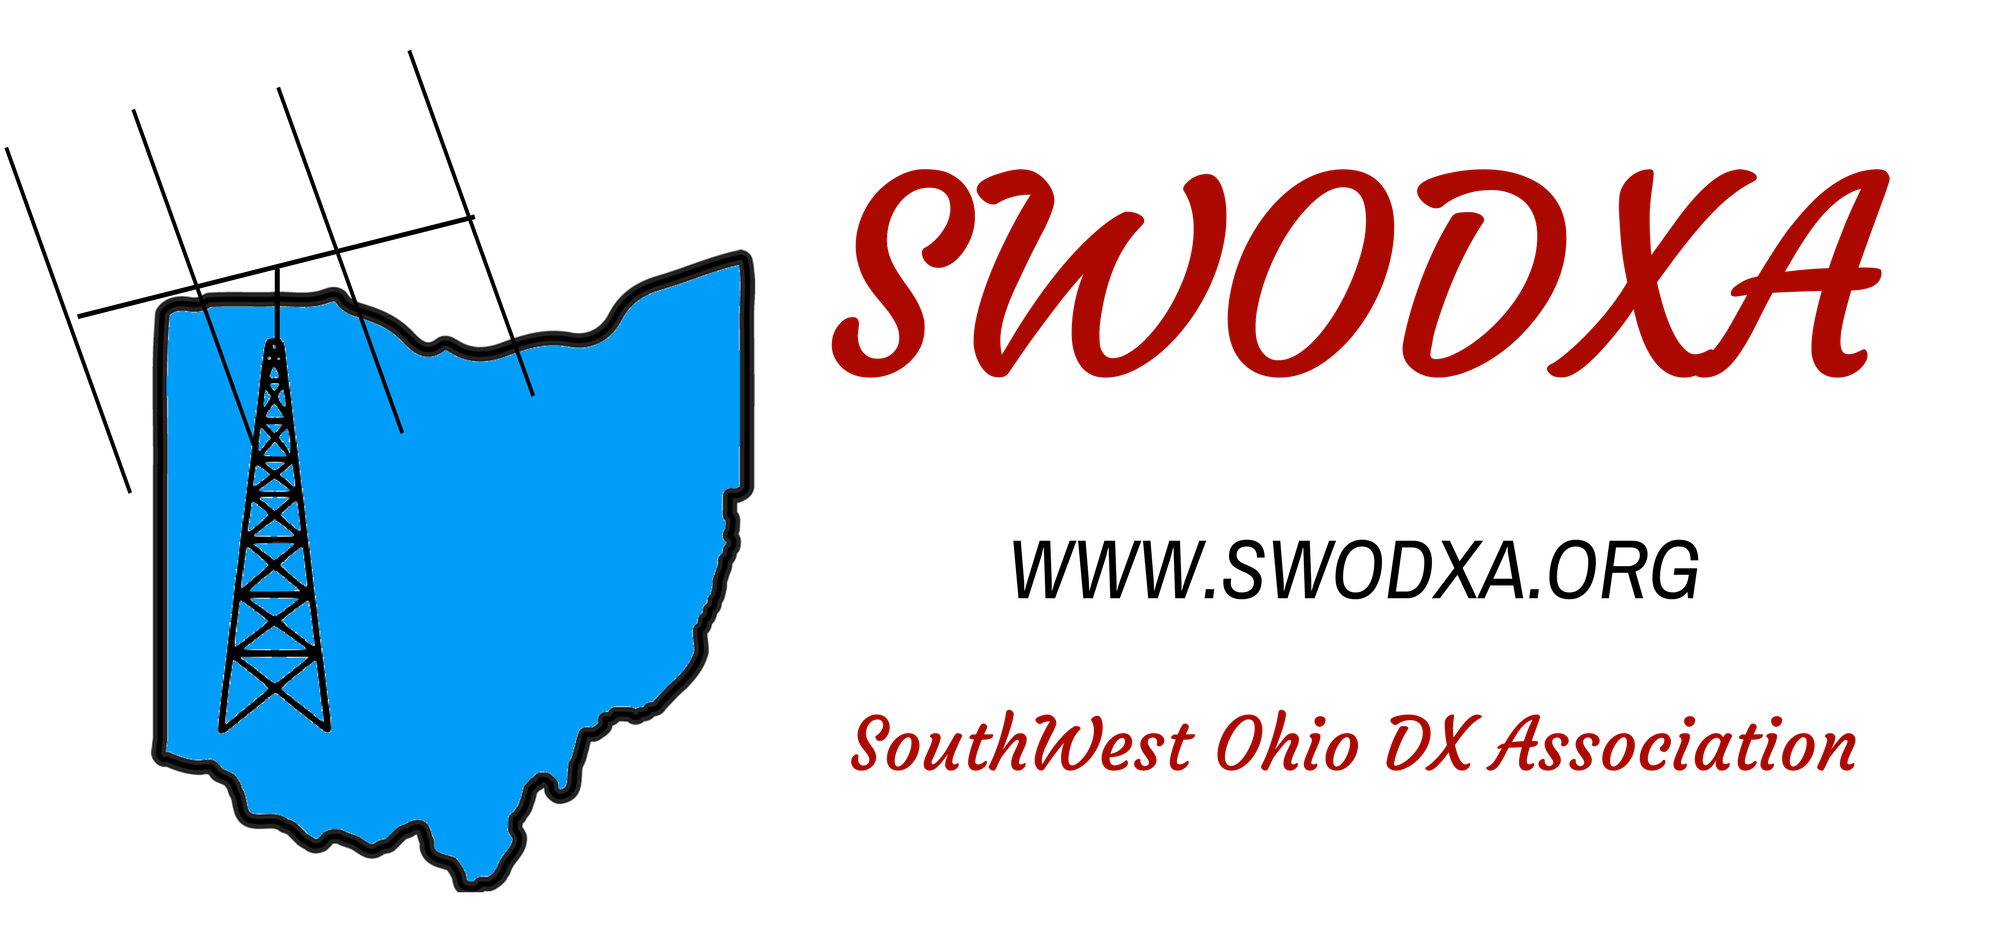 SouthWest Ohio DX Association